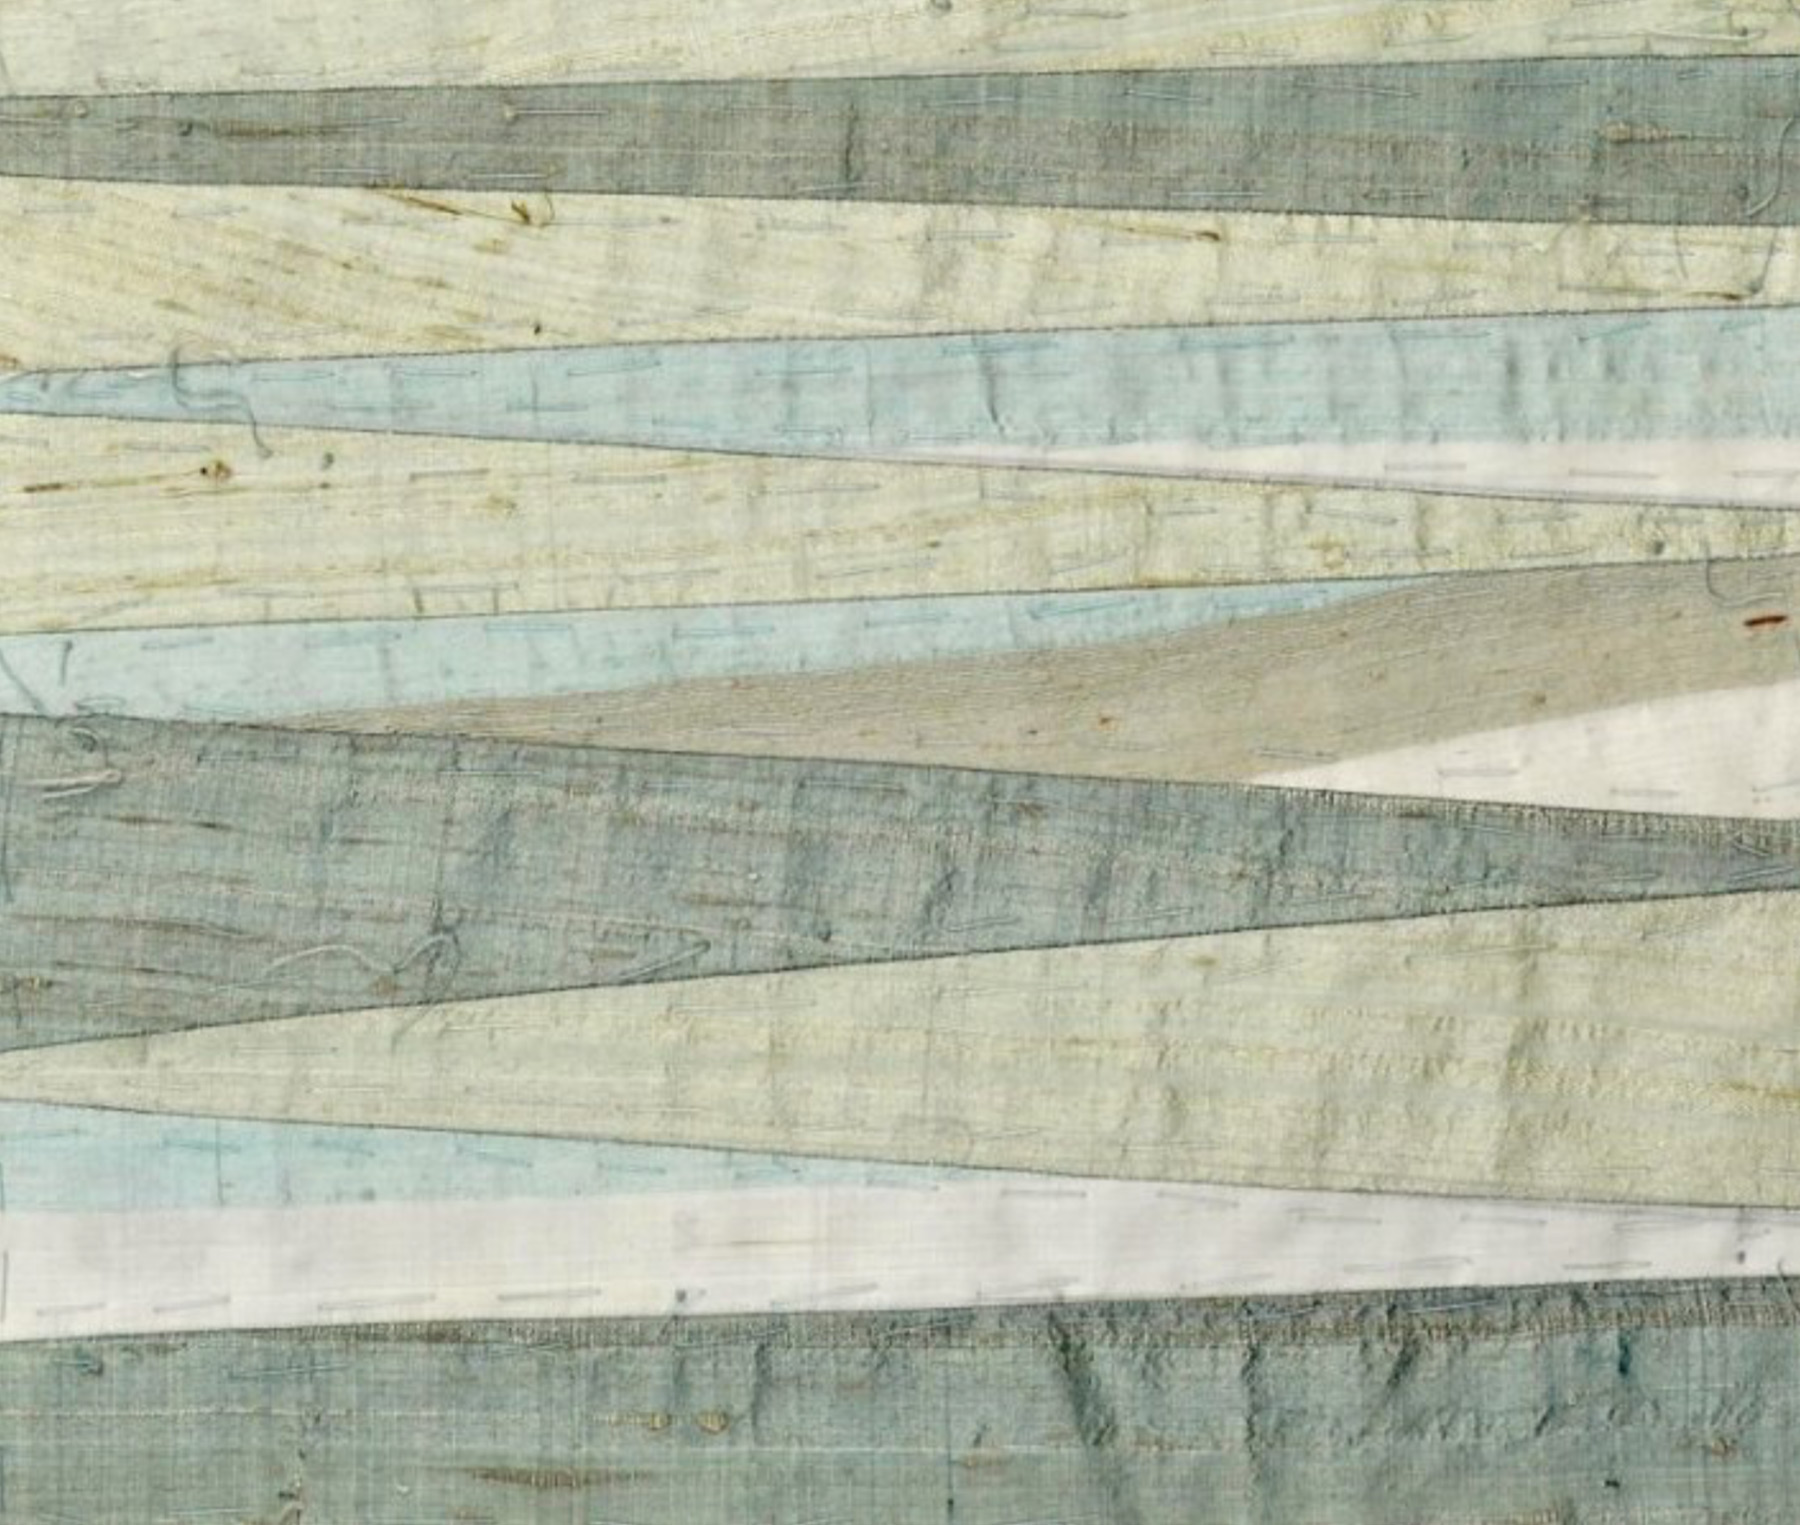 Gott Bay Study 2, Jennifer Hex (image courtesy of The Argyll Collection)